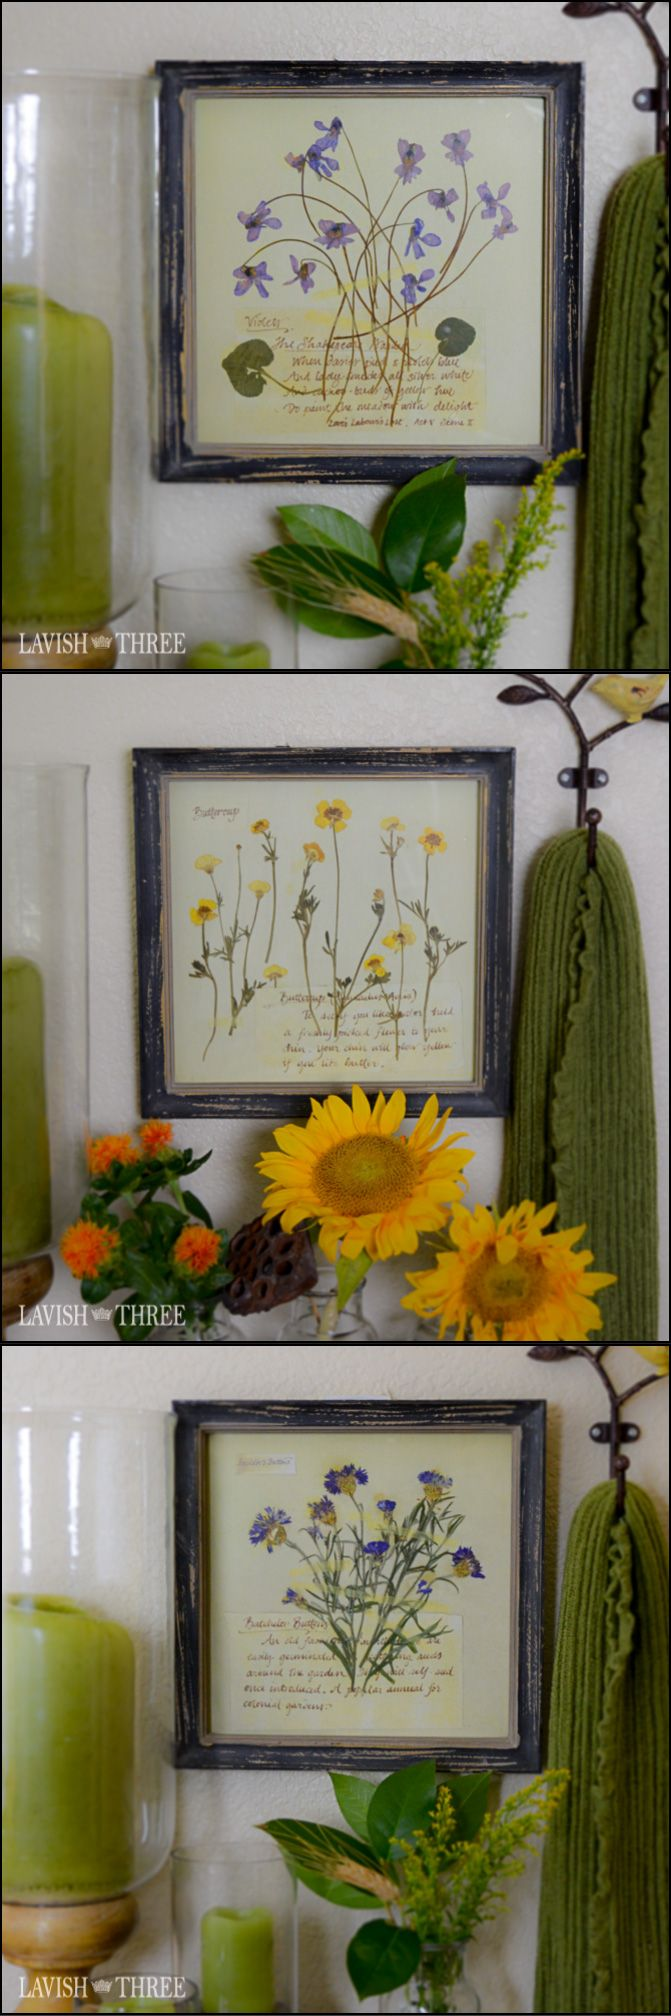 Bring old-world charm into your environment with our Floral Botanical framed prints. Reminiscent of little notes and sentiments inscribed on sheets of parchment along with the pressed wildflowers gathered, these prints are lovely alone, displayed in pairs, or as a collection. The perfectly tattered look of the frames creates a time-worn shabby chic appeal.